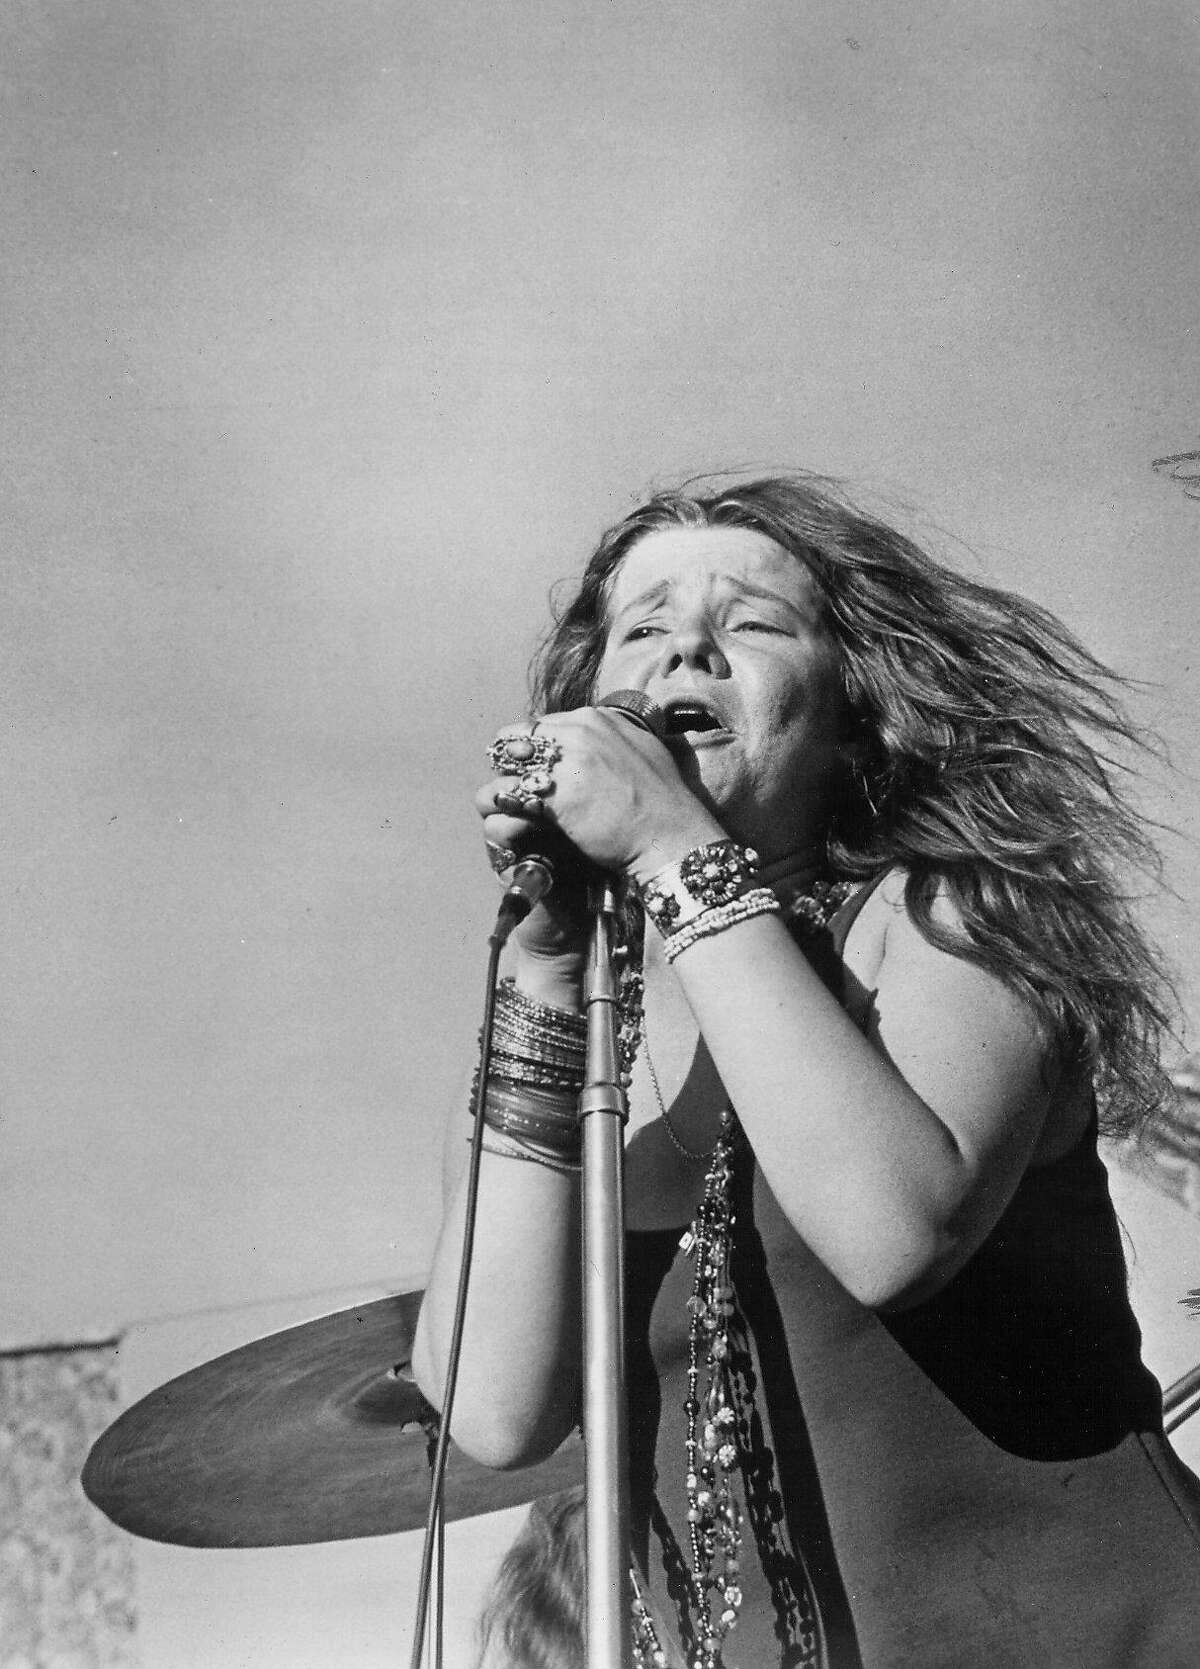 Singer Janis Joplin is shown at the San Jose Pop Festival in this undated file photo. Joplin was found dead at age 27 in her Hollywood hotel room on October 4, 1970.